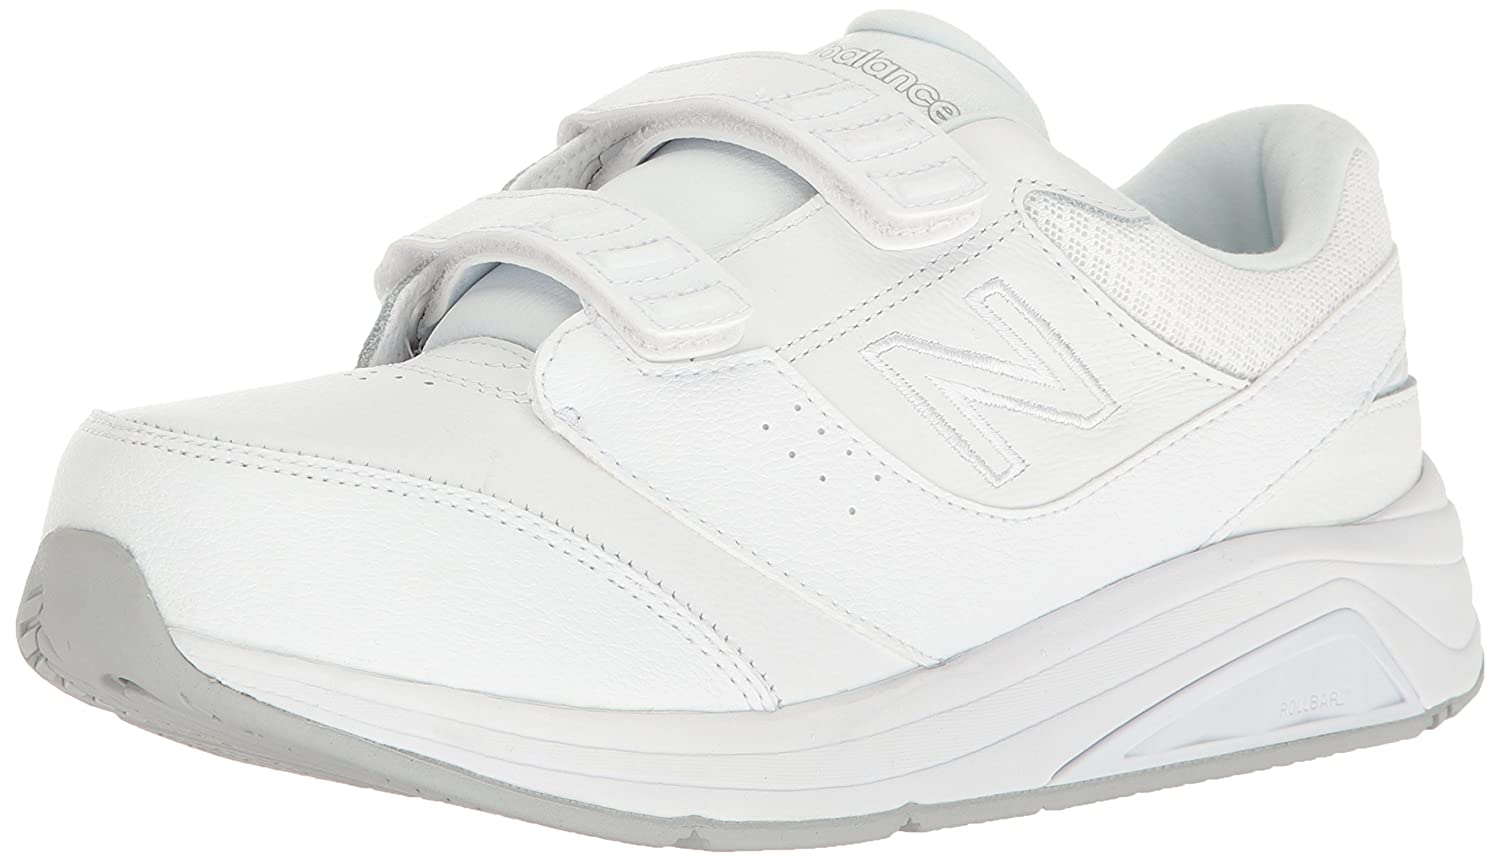 New Balance Women's Womens 928v3 Walking Shoe Walking Shoe B01N553D3X 10.5 D US|White/White